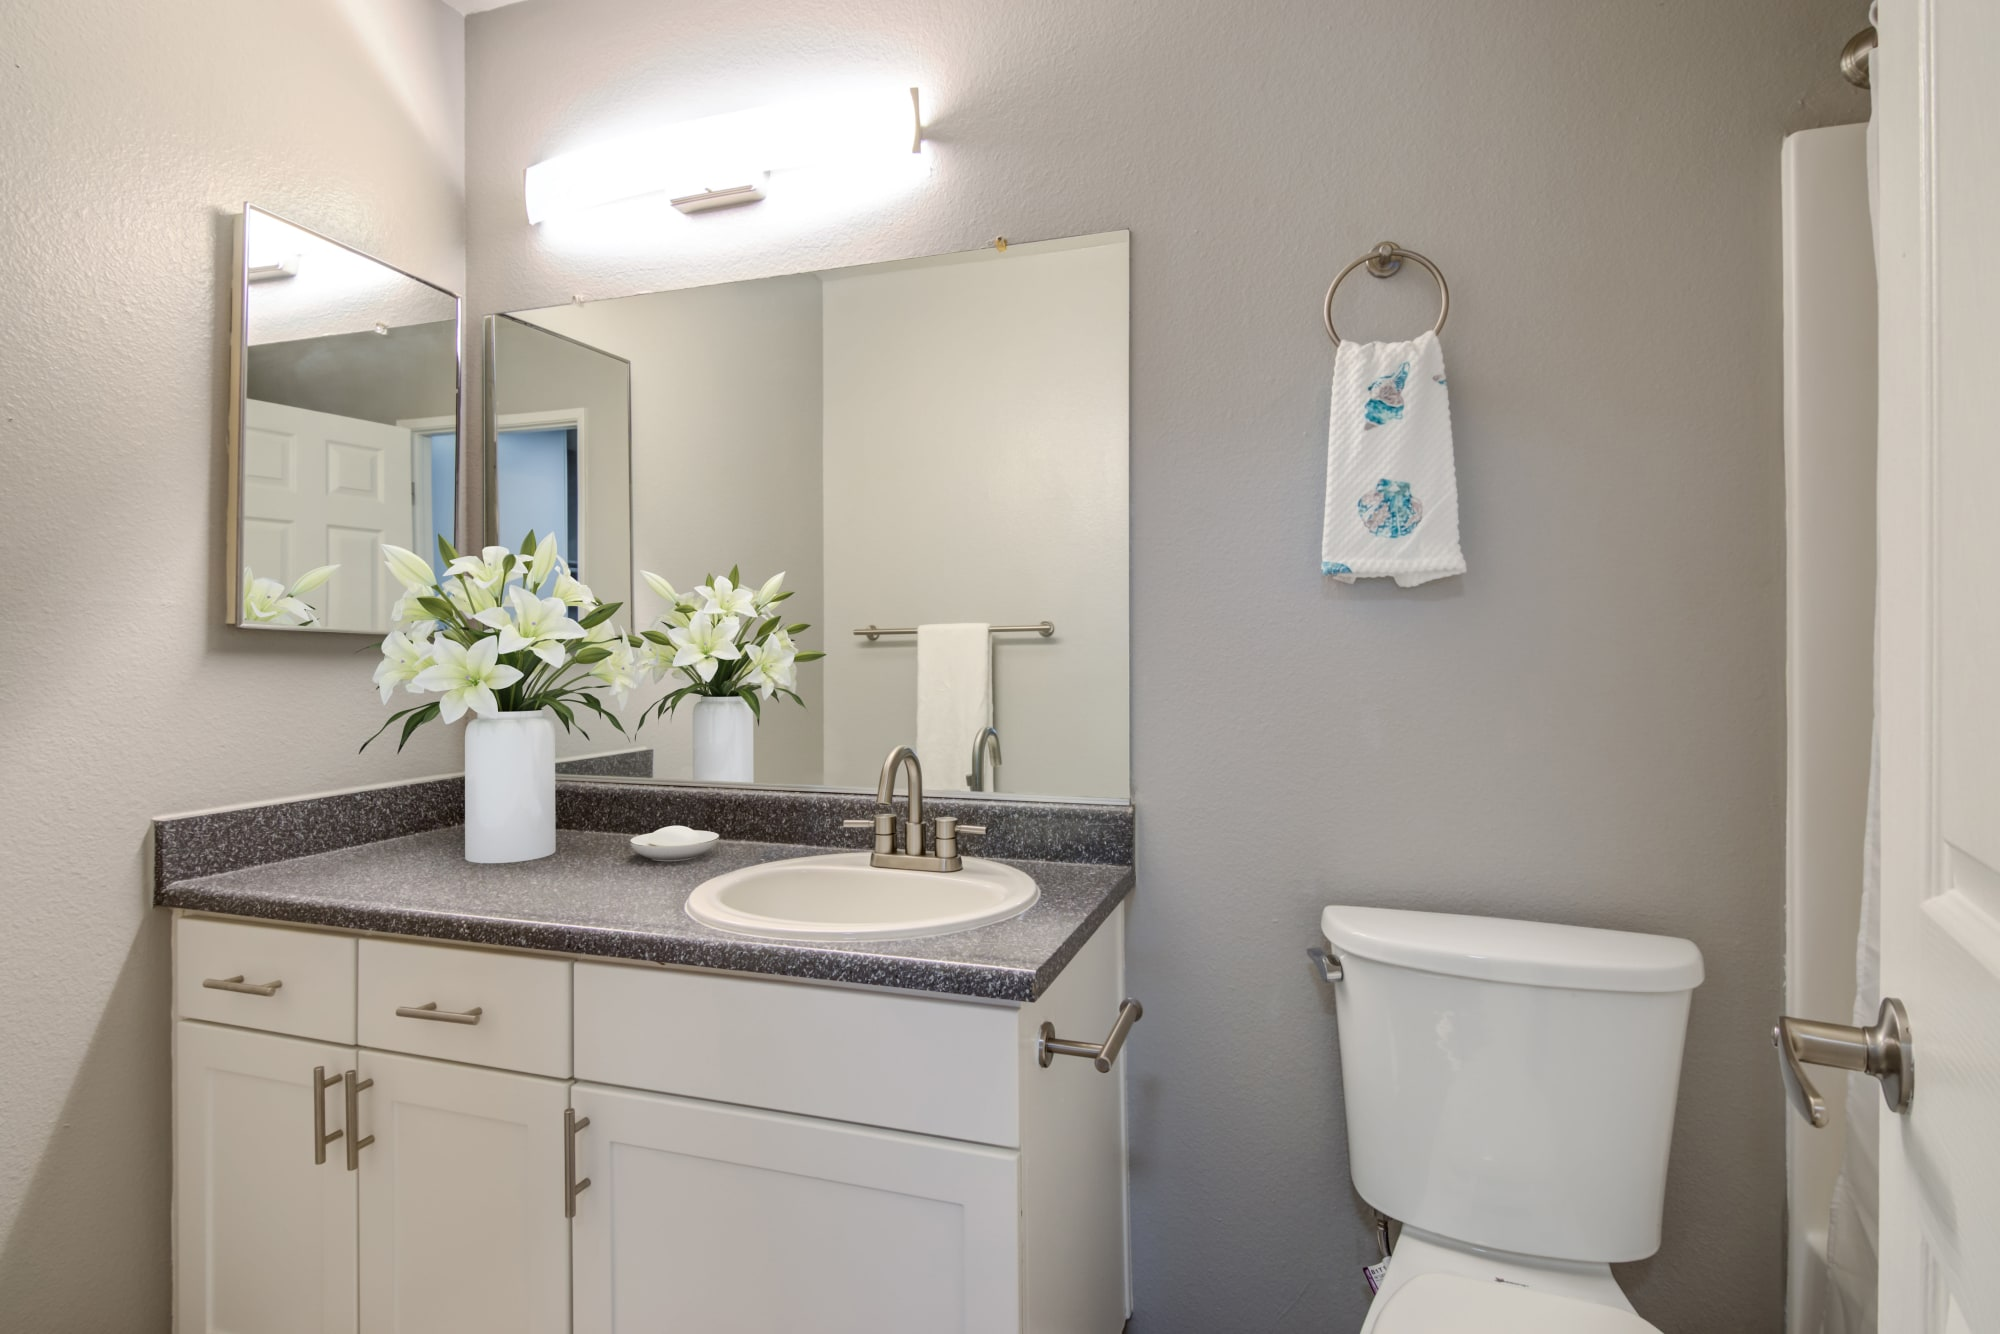 A renovated bathroom with white cabinets at Hillside Terrace Apartments in Lemon Grove, California